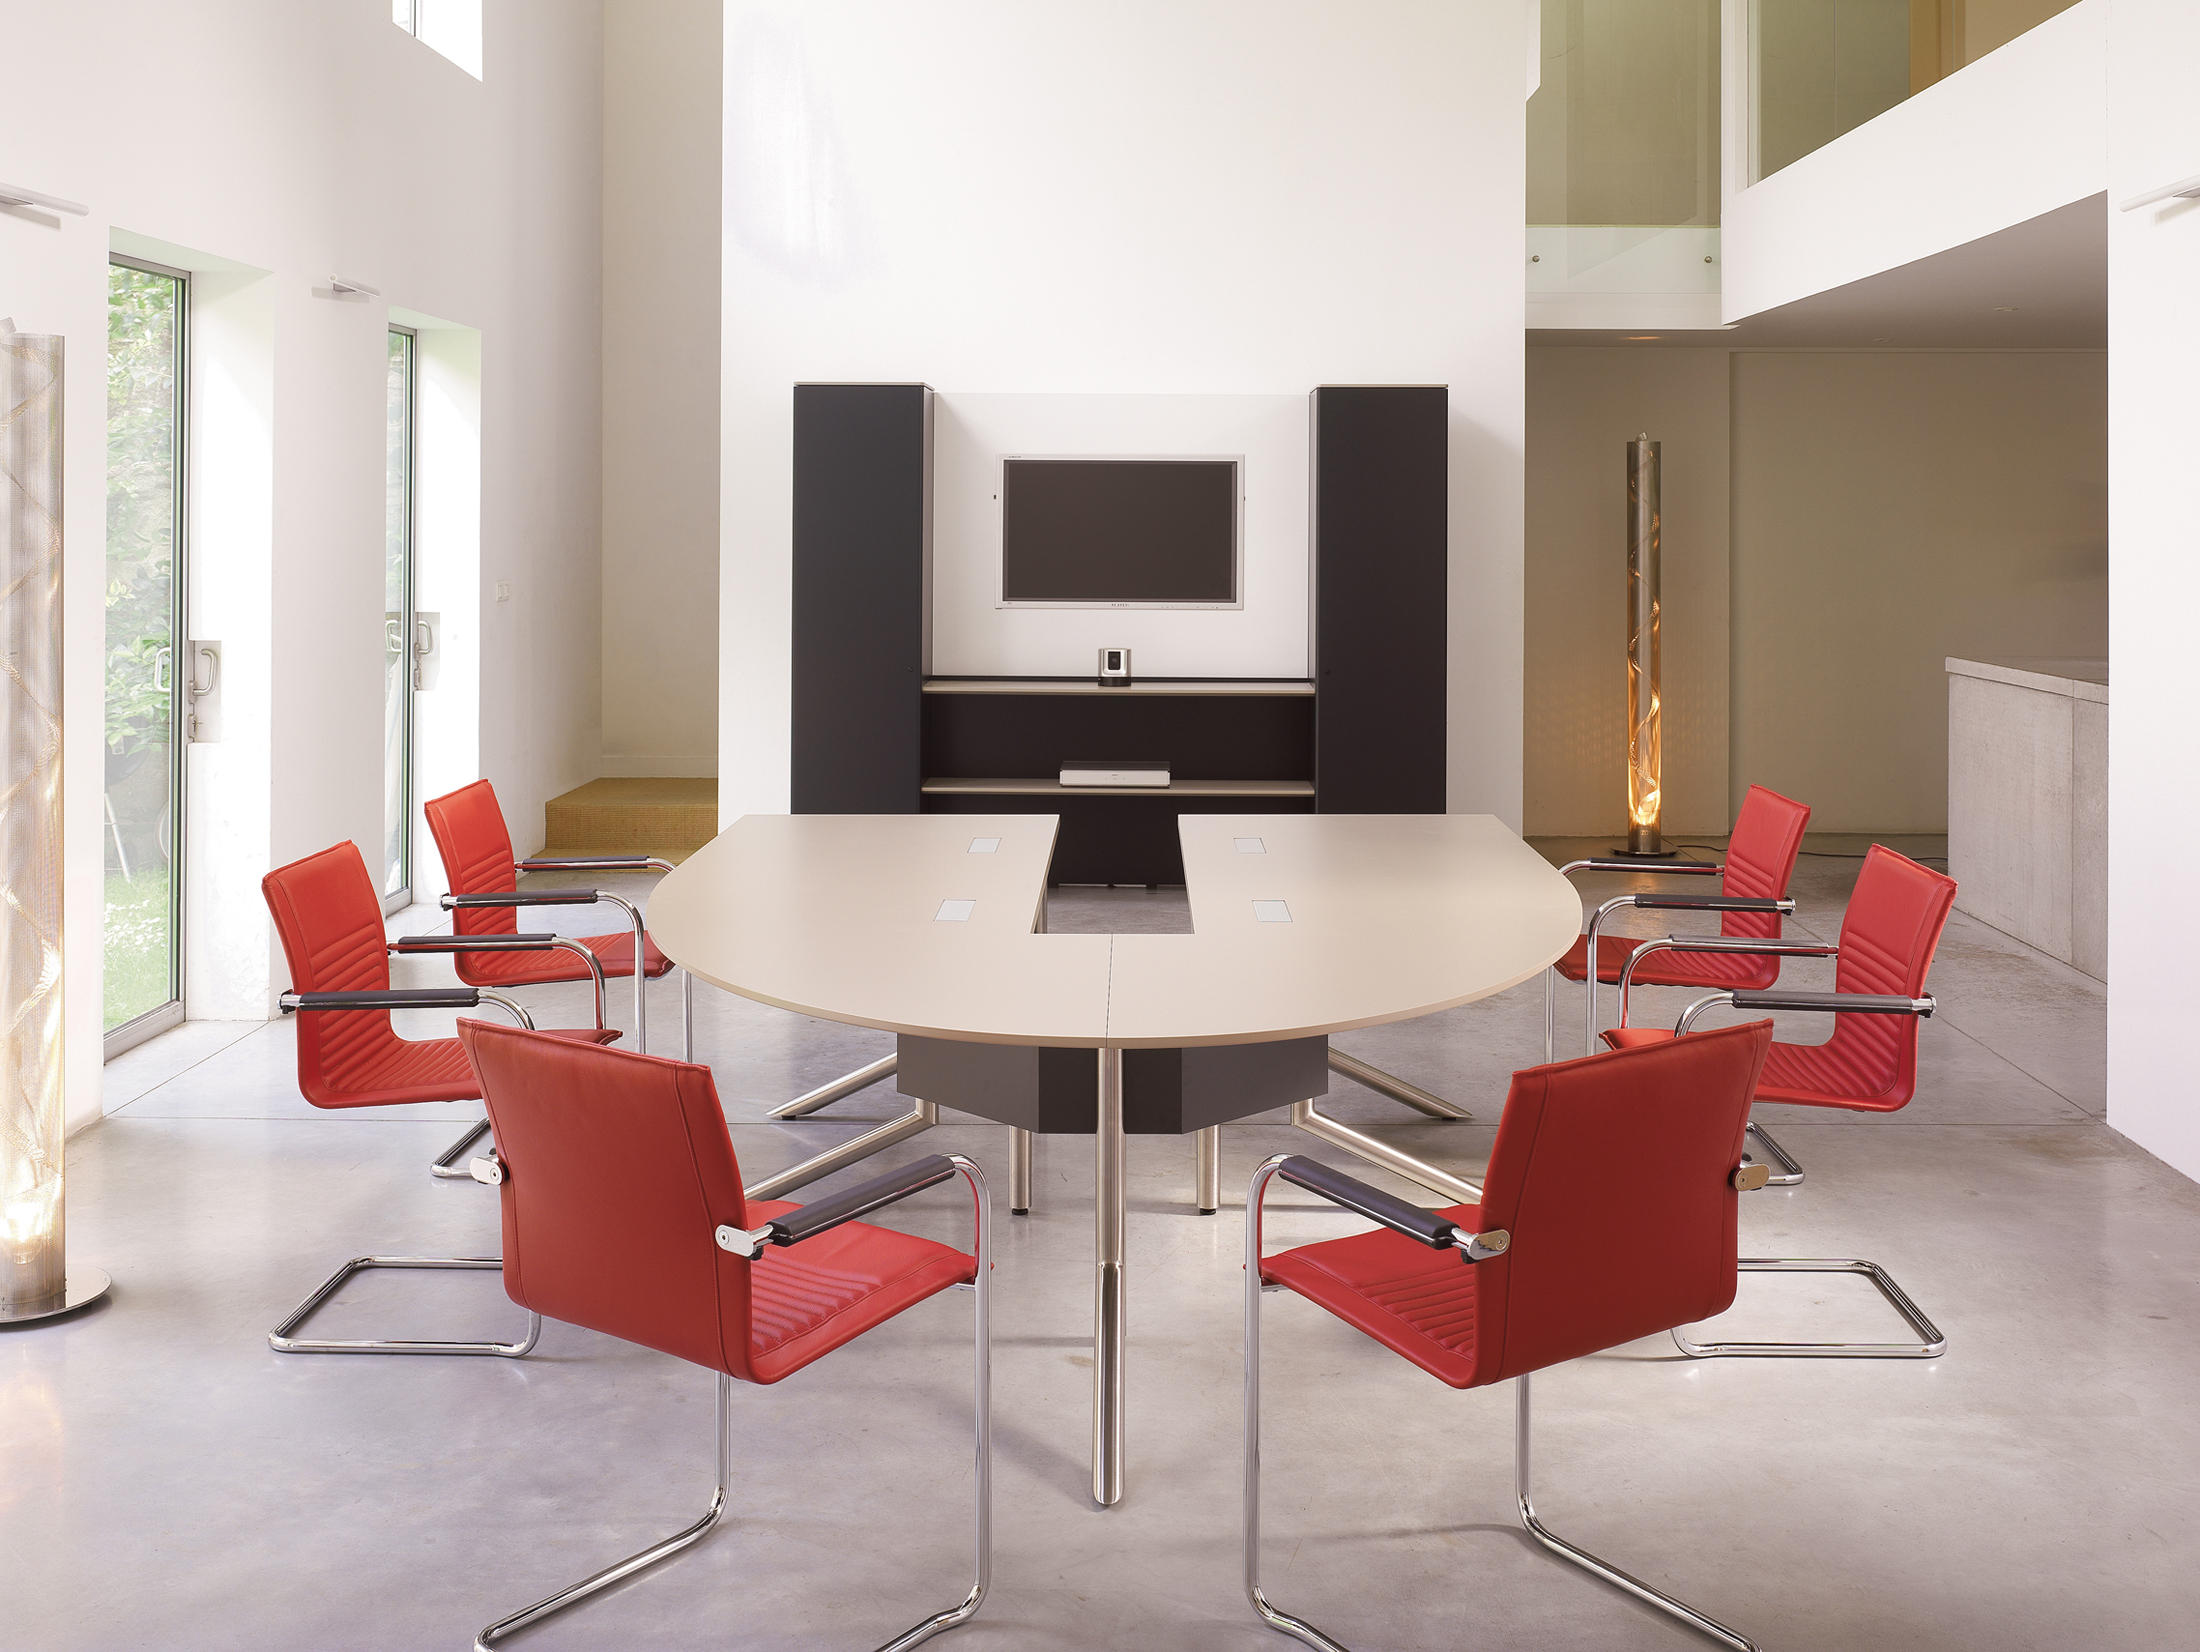 AUDIENCE CONFERENCE TABLE Contract Tables From Haworth Architonic - Haworth conference table